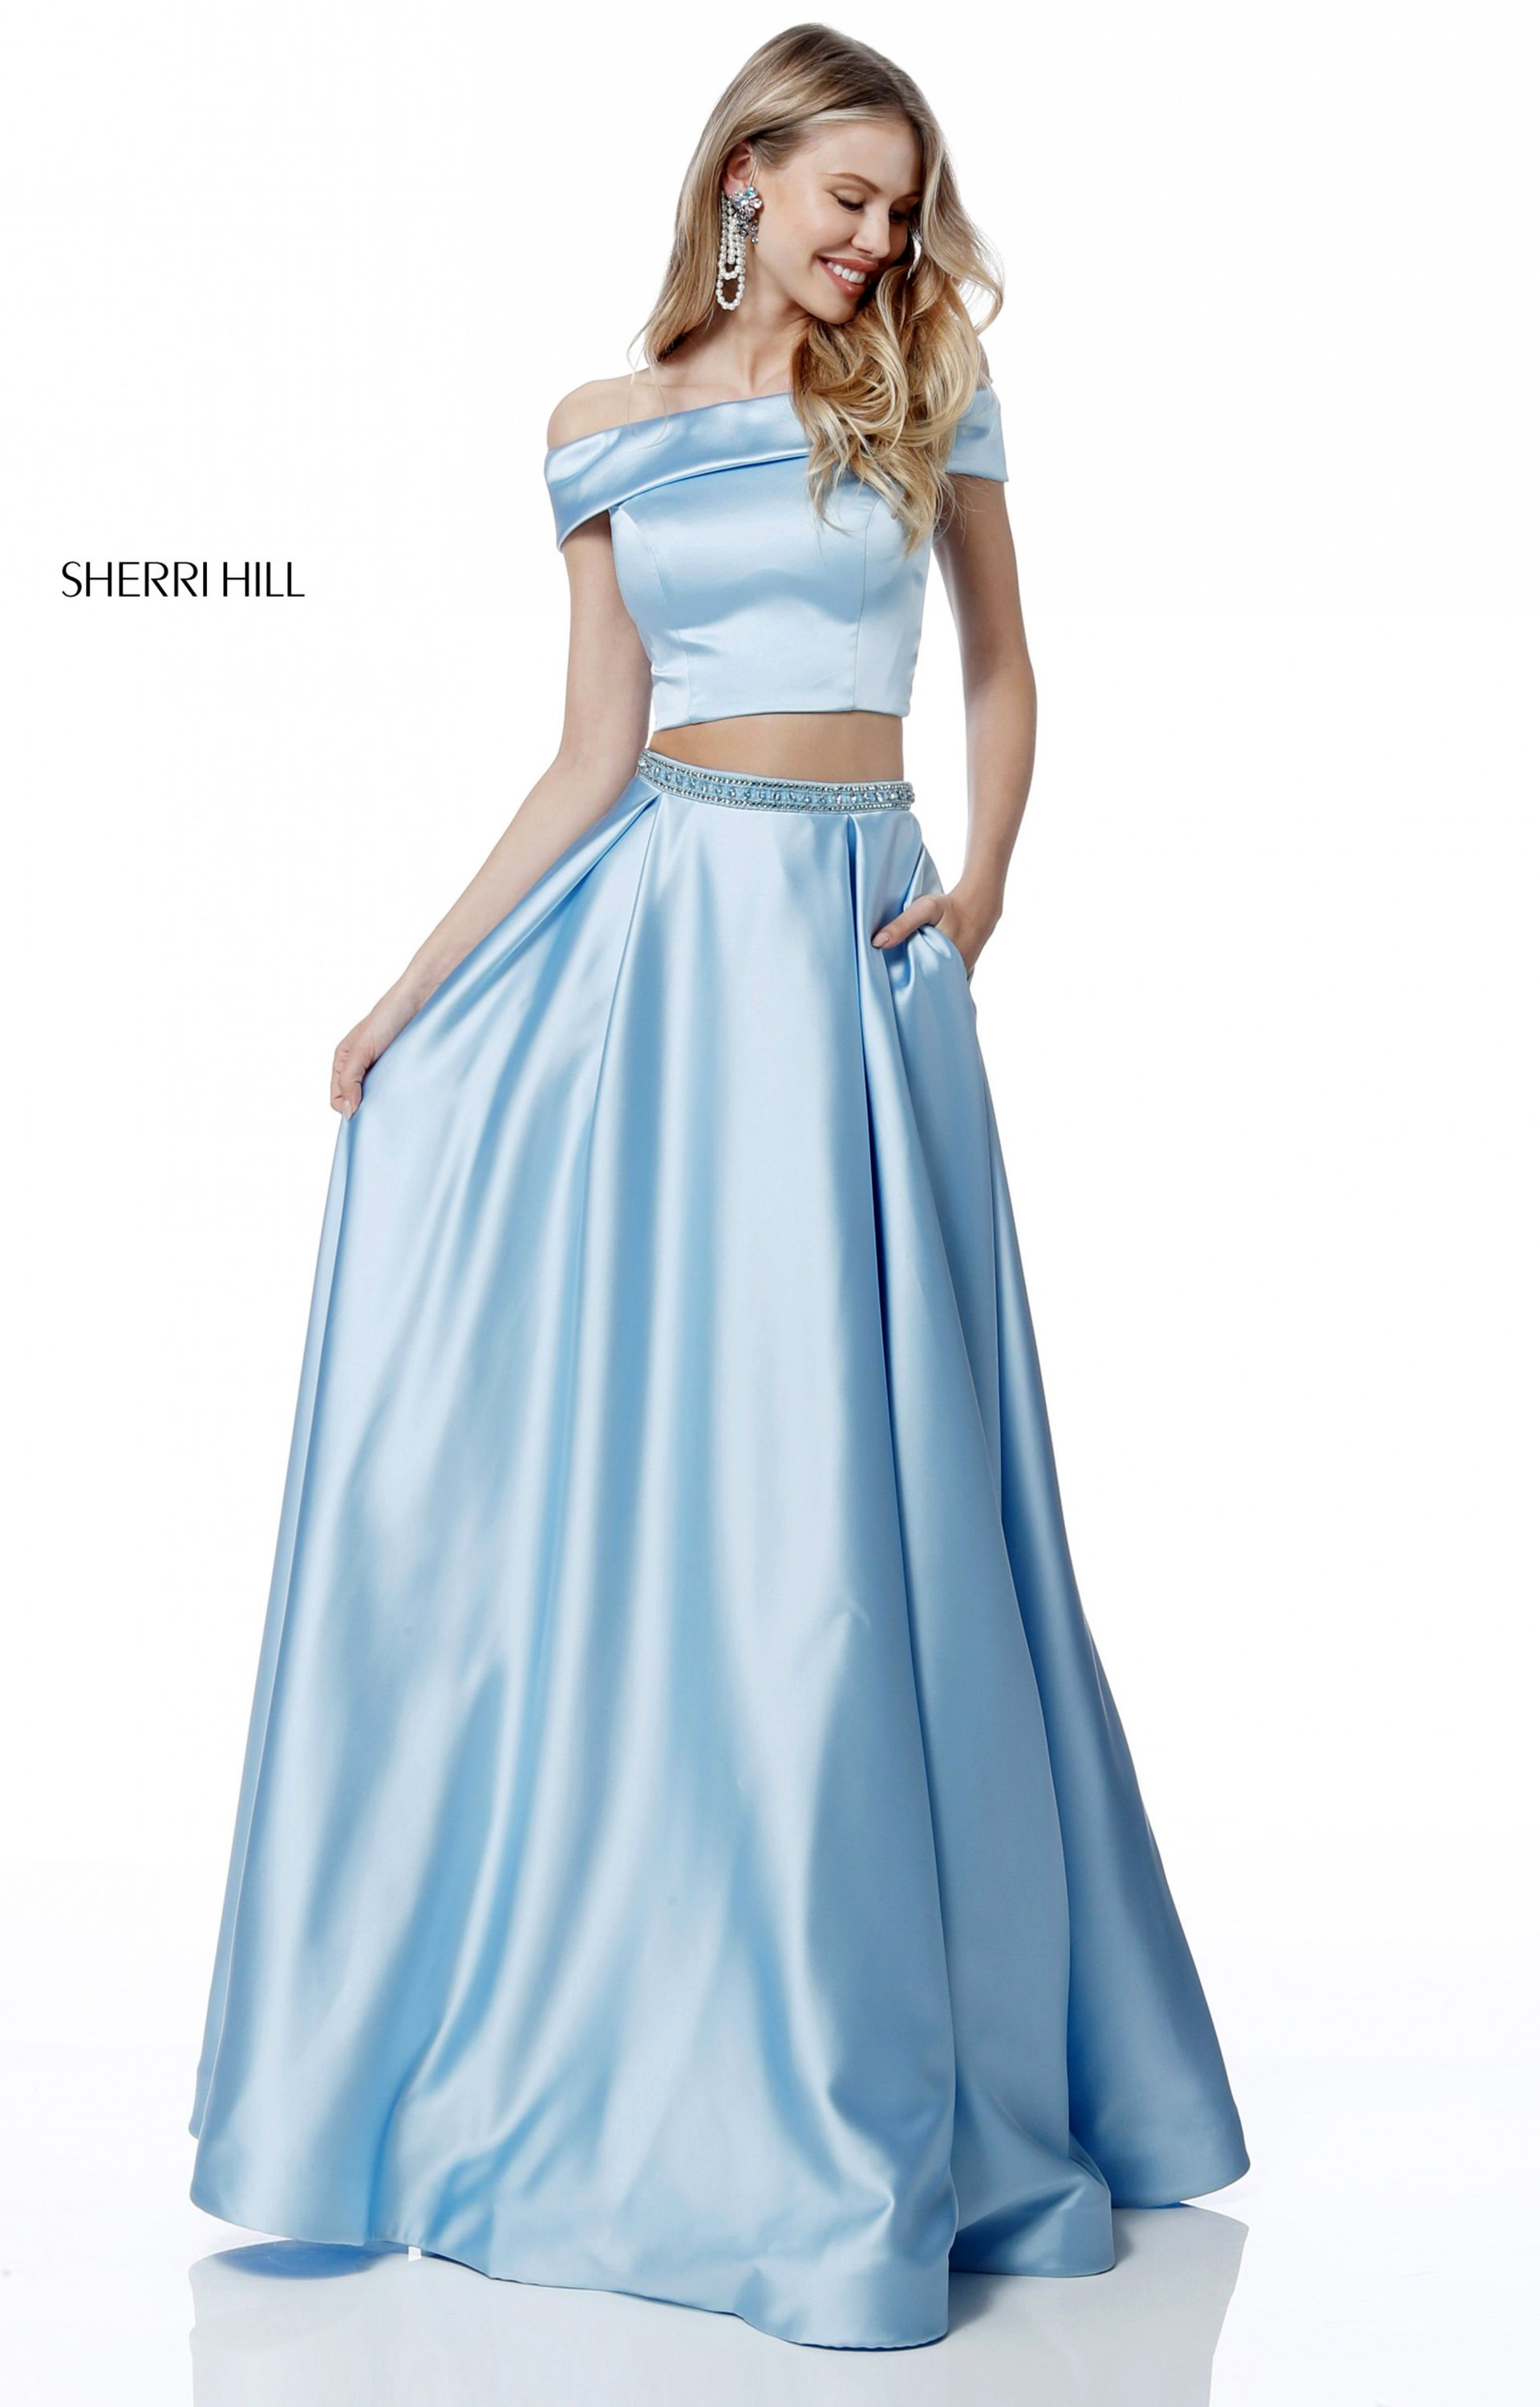 Sherri Hill 51632 - Two Piece Satin Off the Shoulder Prom Dress